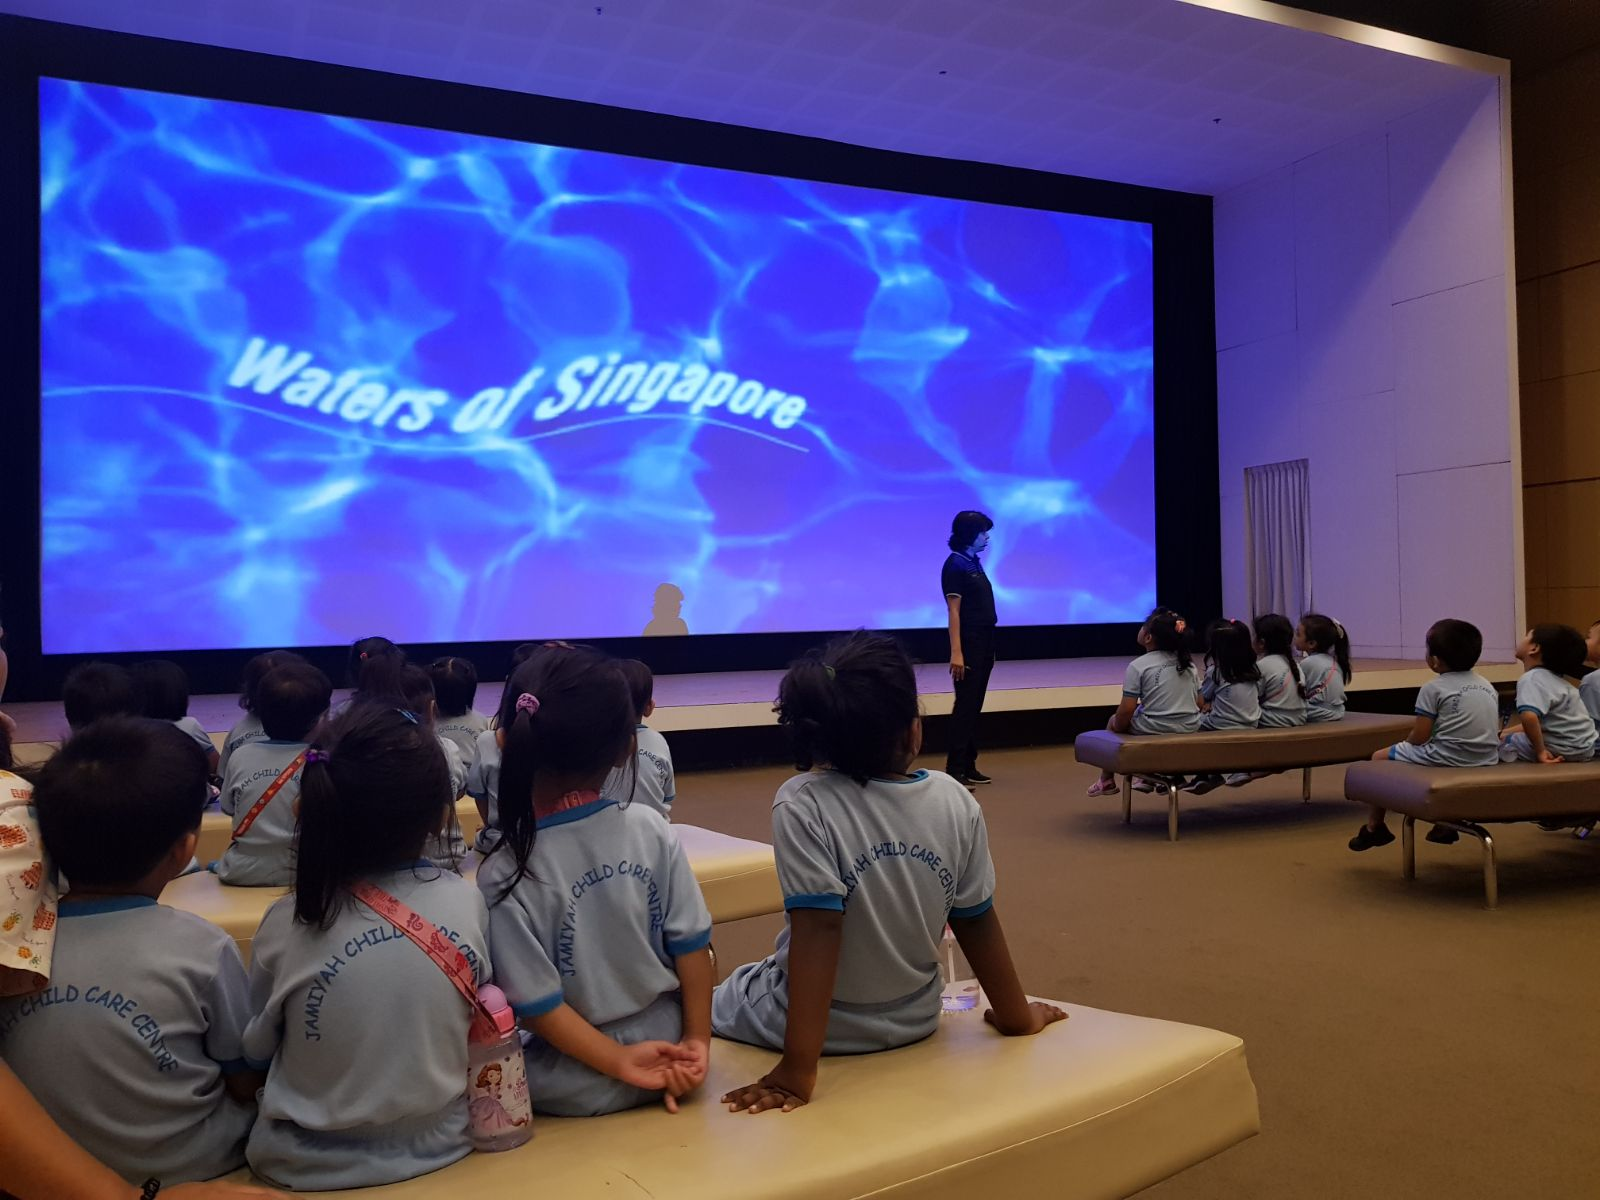 Students of JCCC AMK visits NEWater Singapore